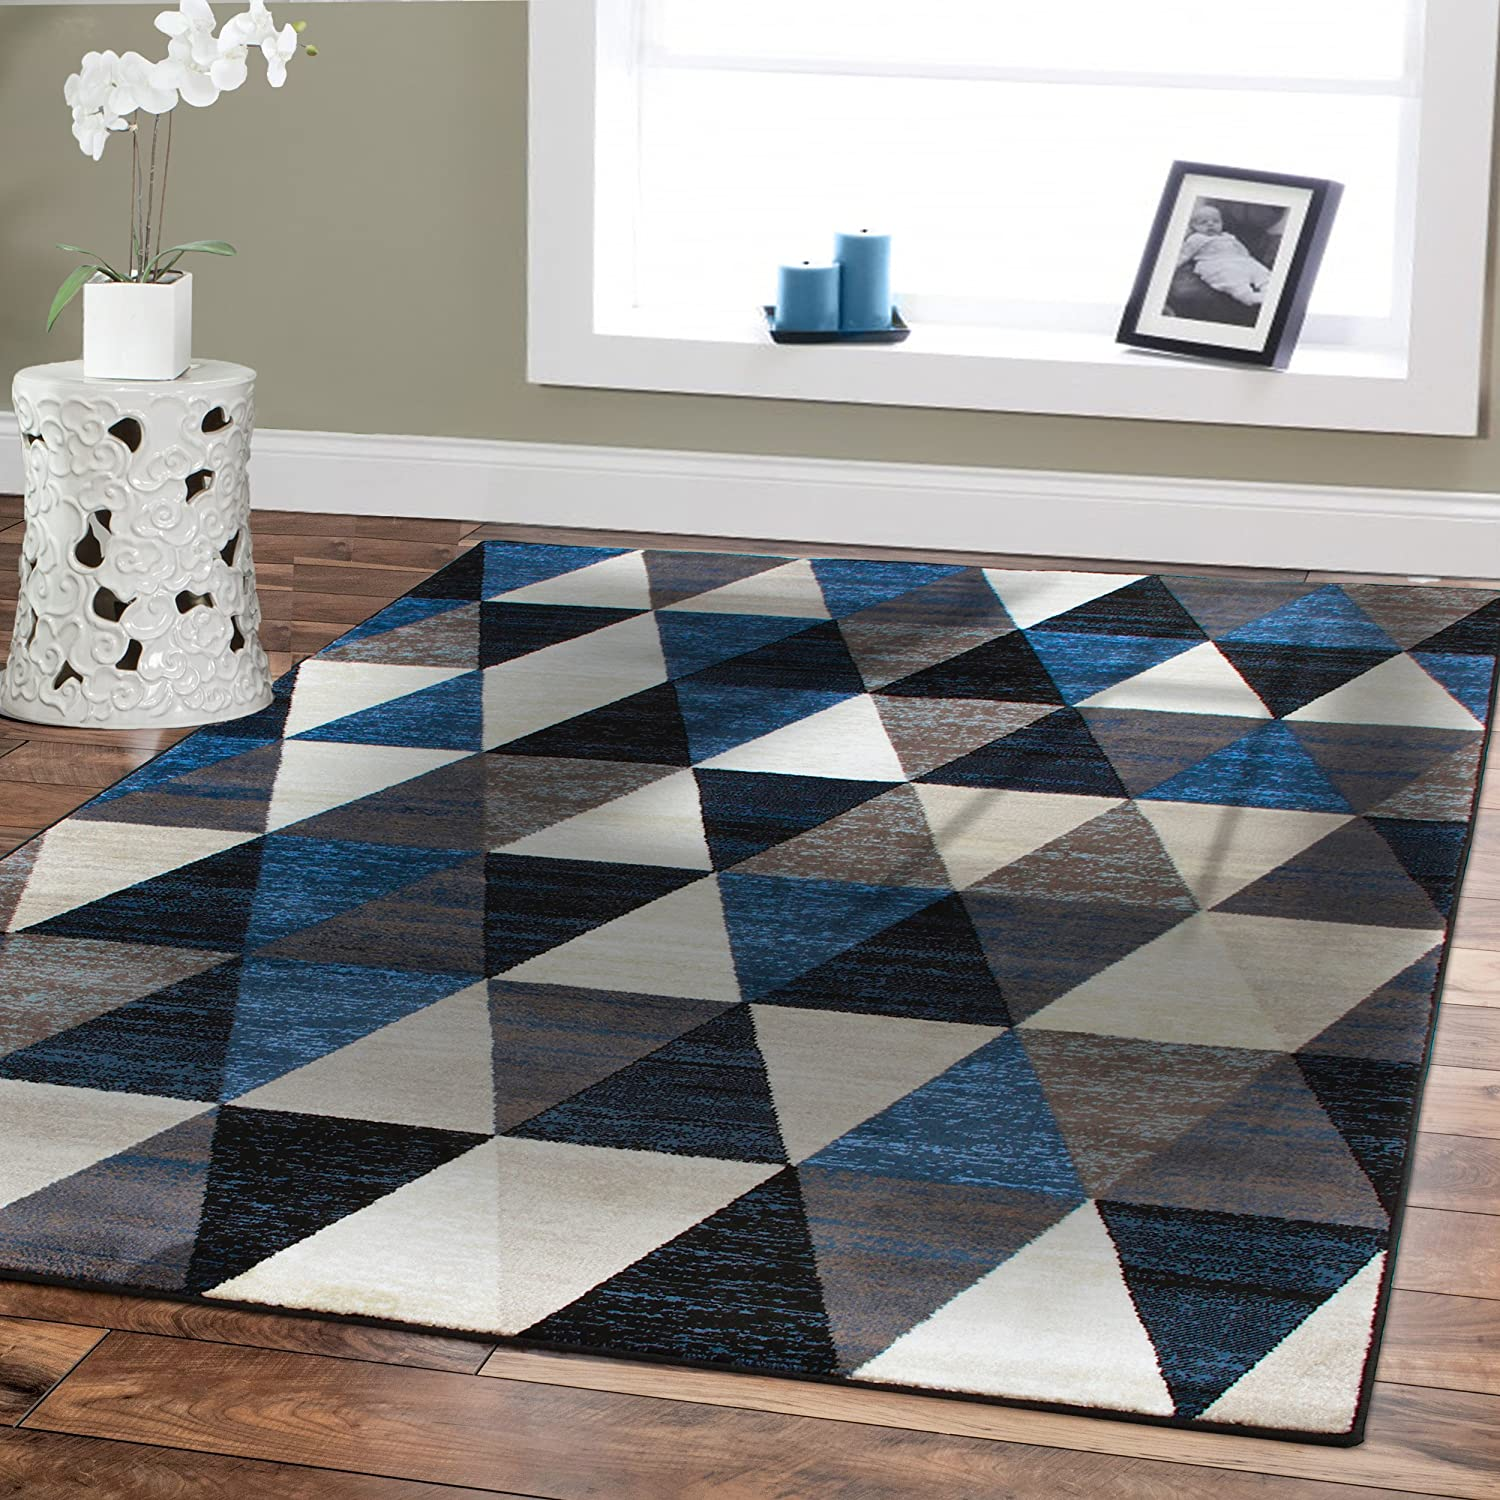 2c34b305221a New Premium Rugs For Bedroom Carpet Black Triangle Style 2x3 Foyer Rugs  Indoor Rugs Clearance Rugs Beige Cream White Blue Navy Black Ourdoor Rugs  Kitchen ...